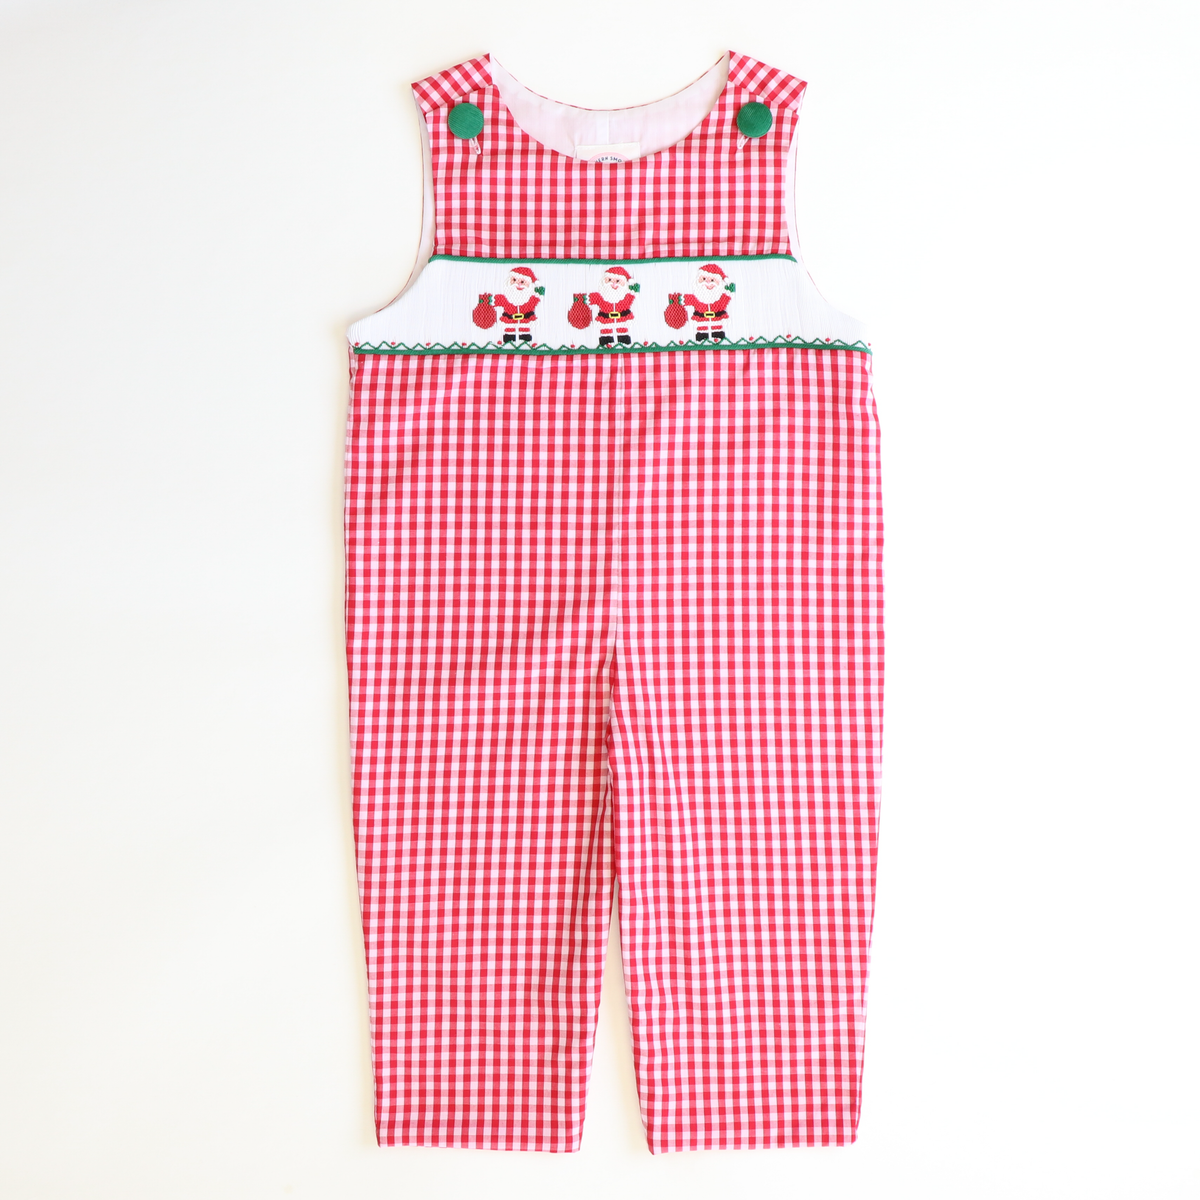 Smocked Here Comes Santa Longall - Red & White Plaid